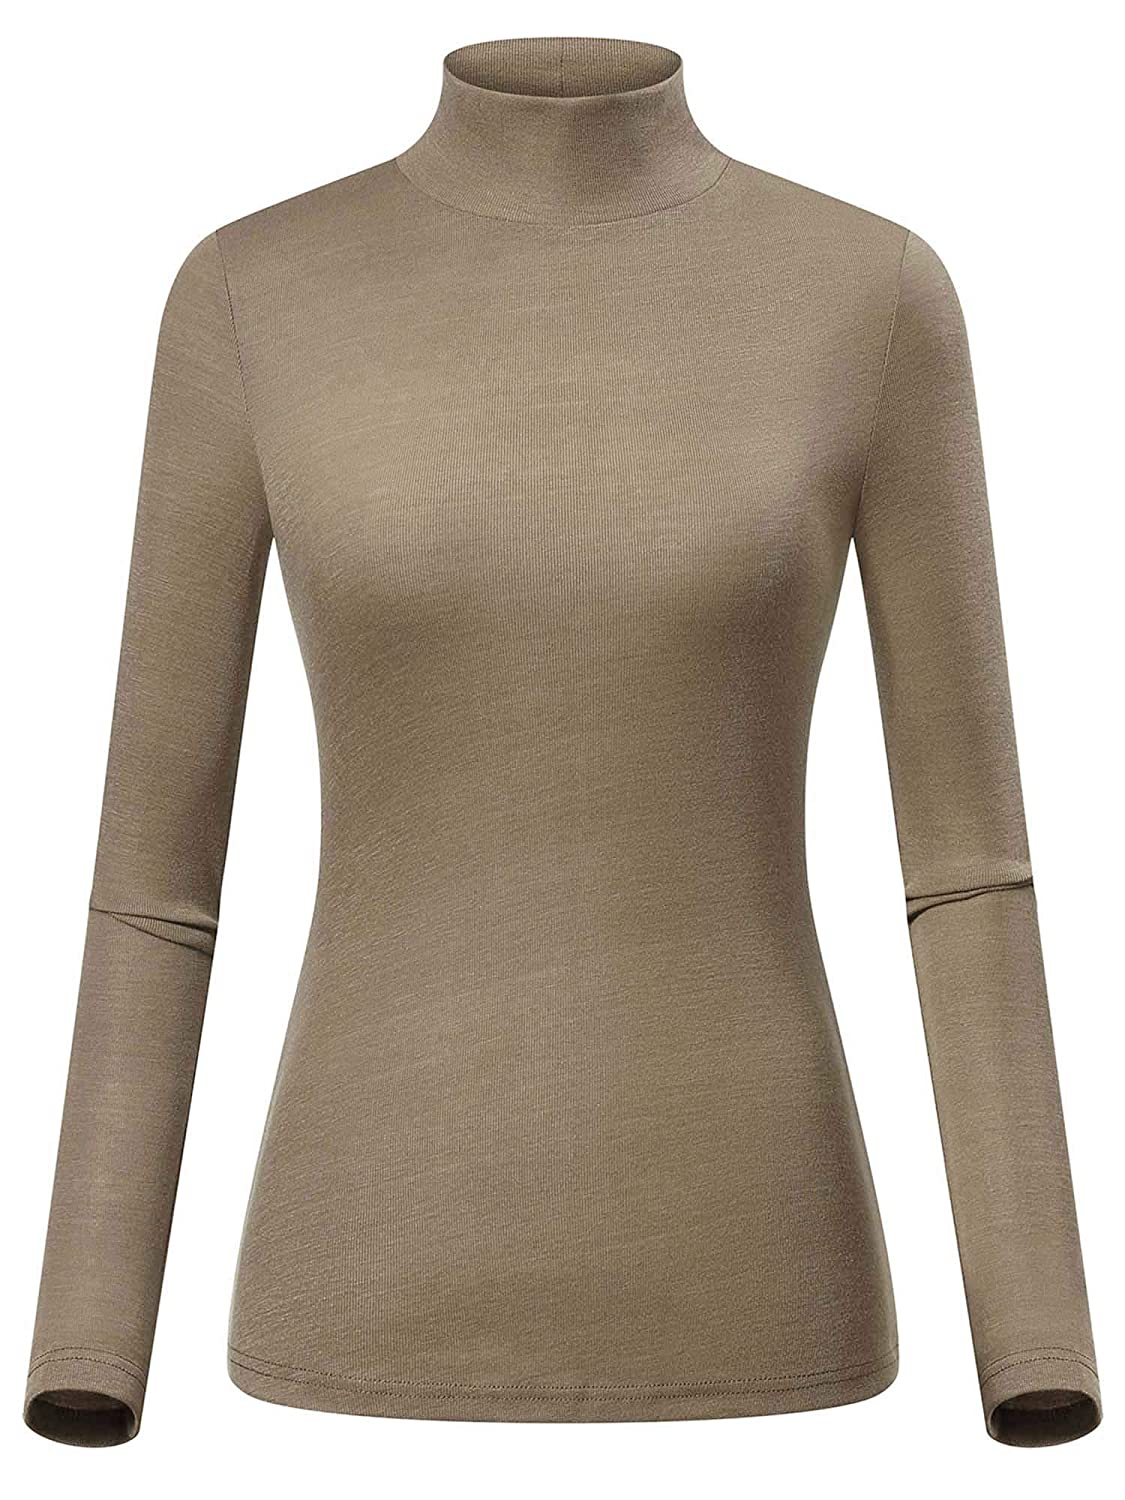 Apricot GUBERRY Women's Mock Neck Long Sleeve Knit Basic Slim Fit TShirt Top